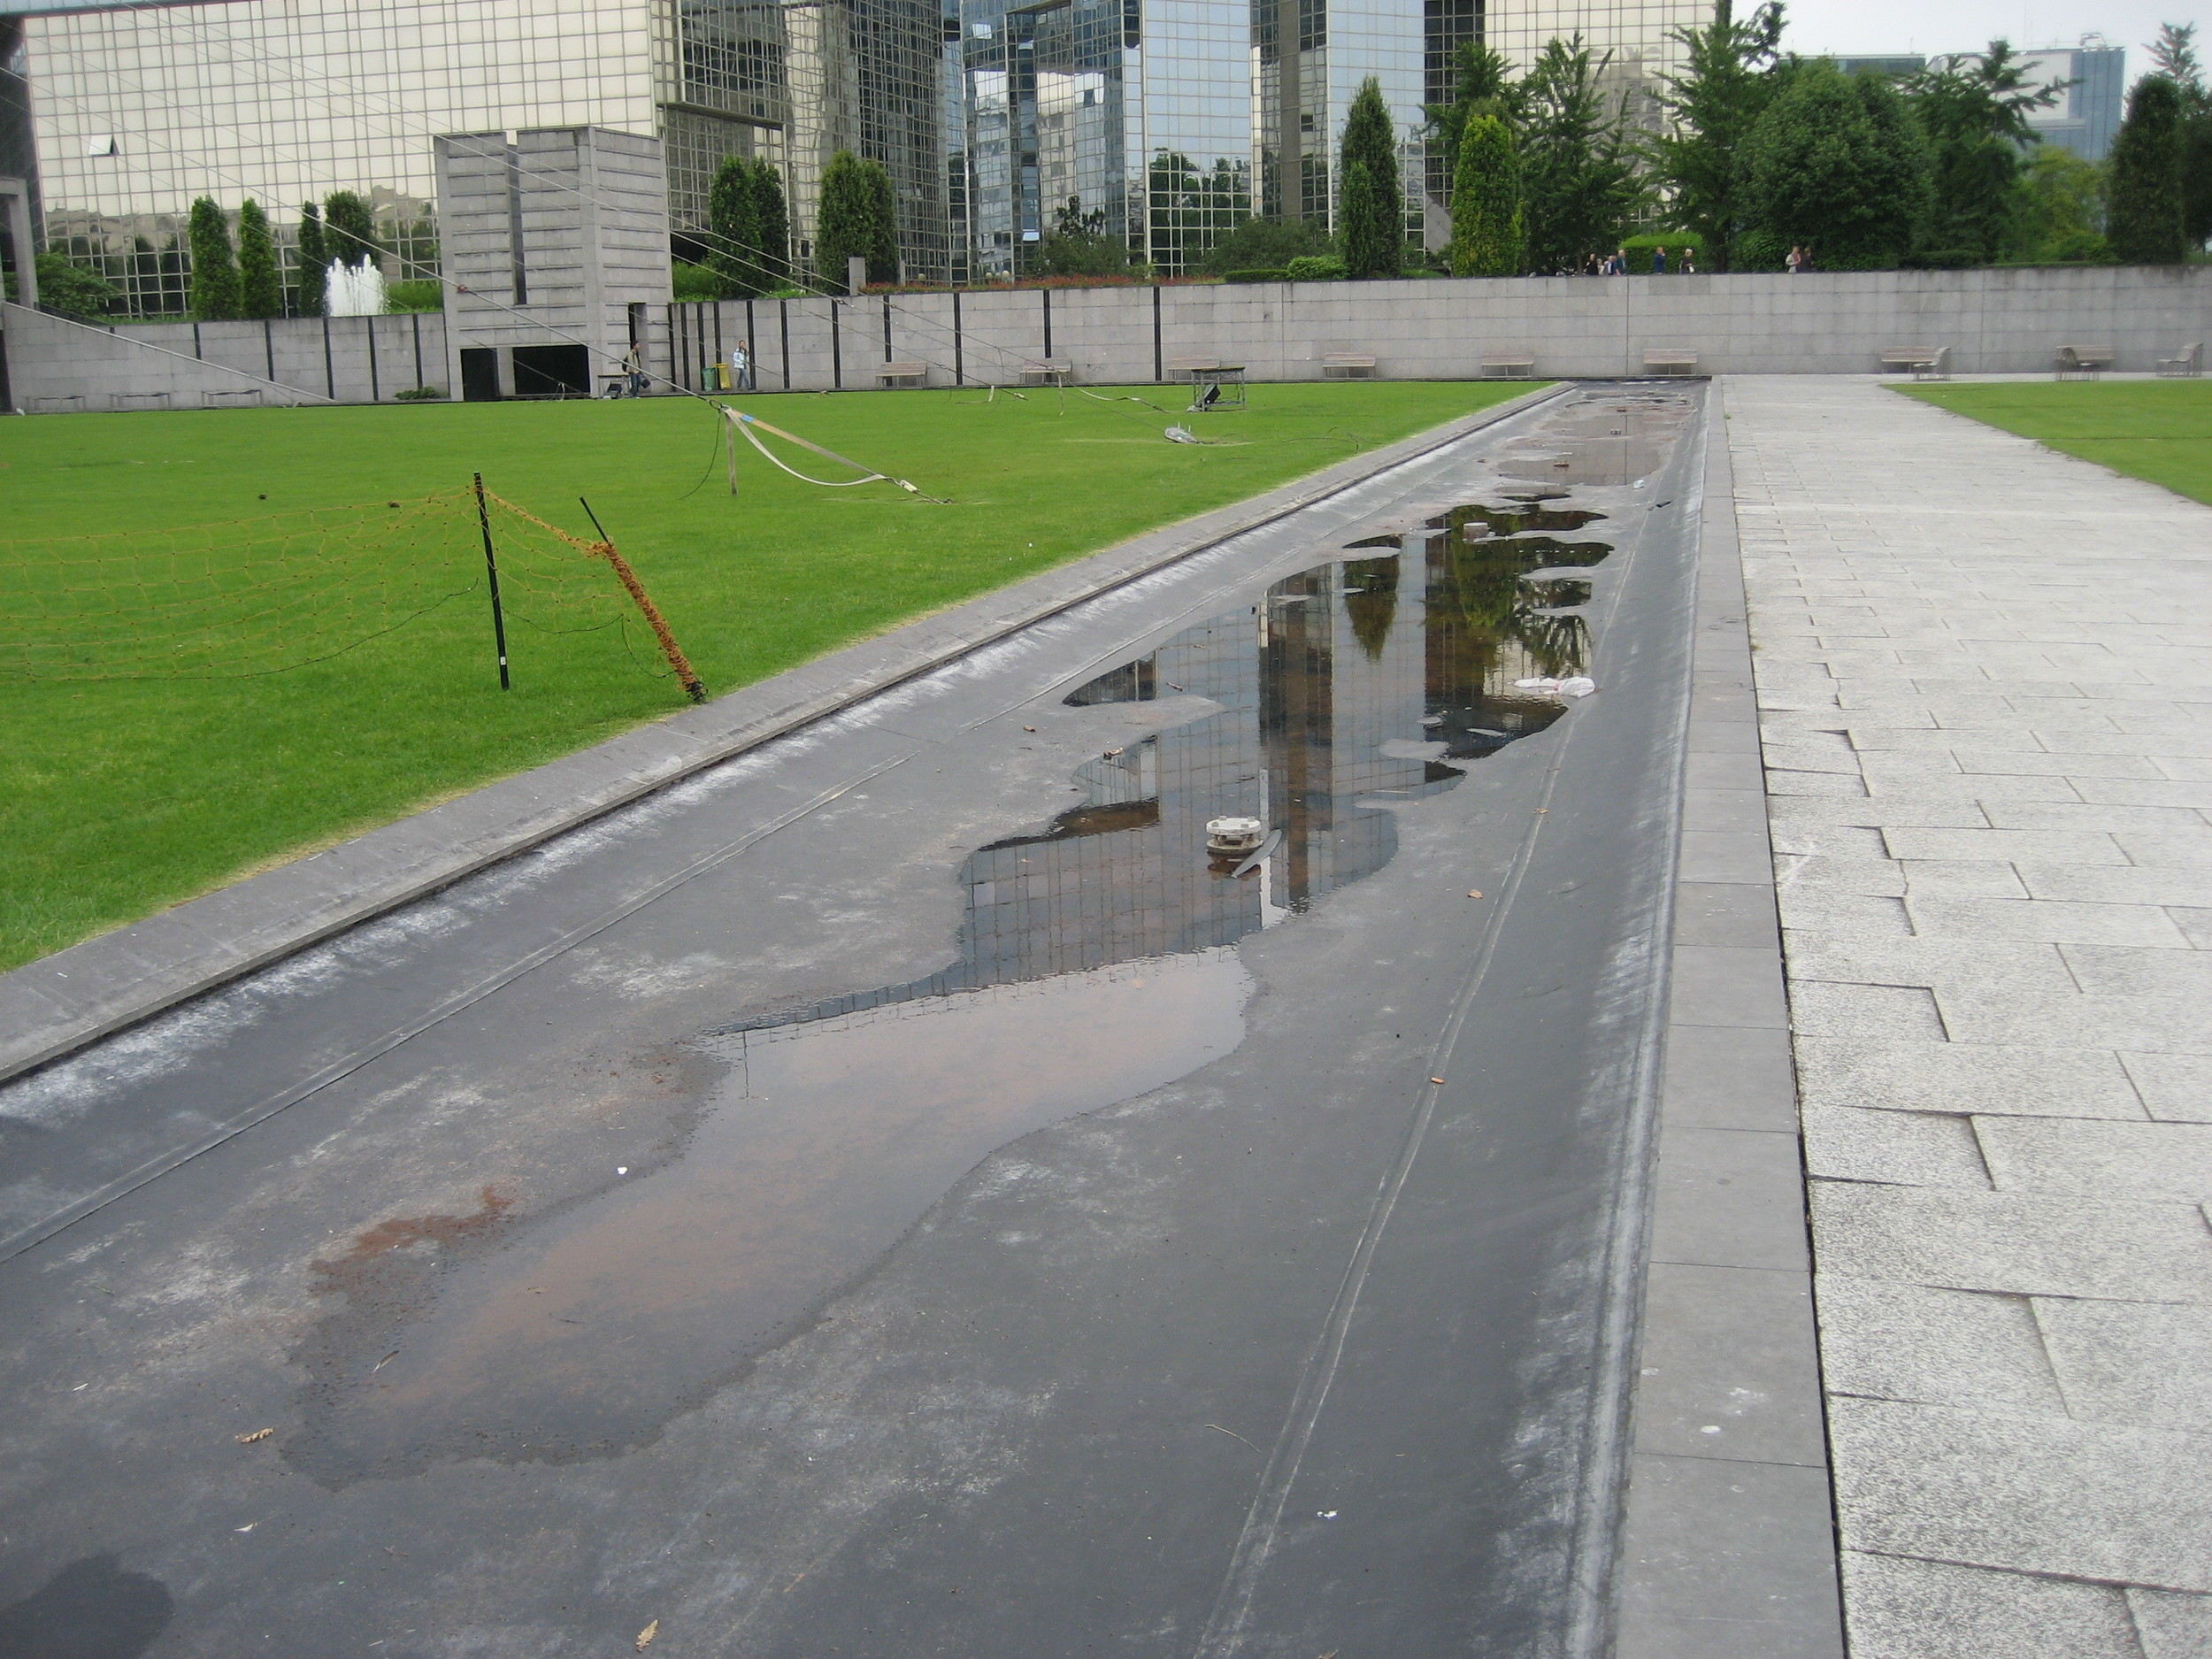 The ambitious design of Parc André Citroën in Paris relied heavily on water features, few of which are still working.